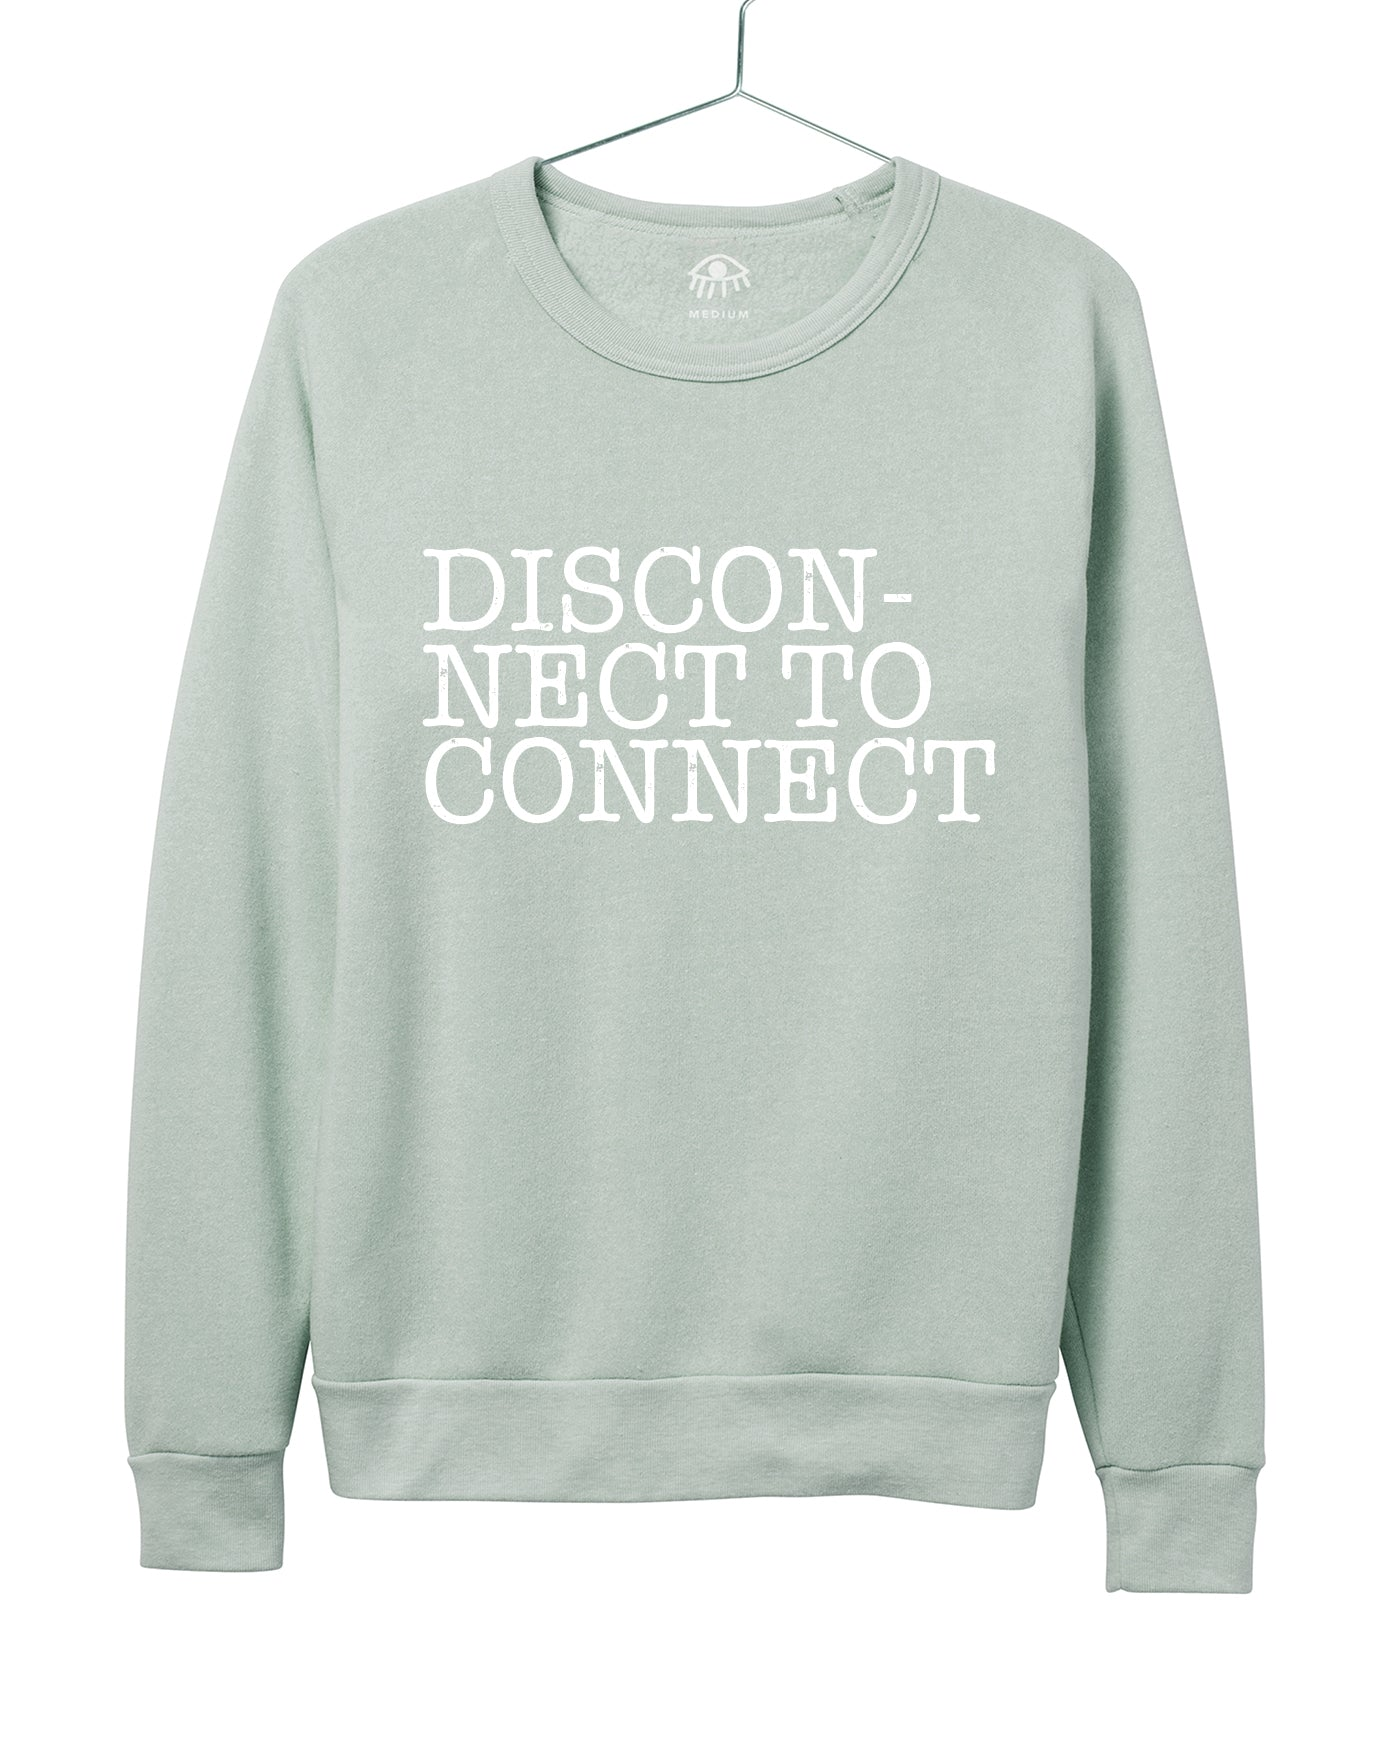 Disconnect to connect Women's Crewneck